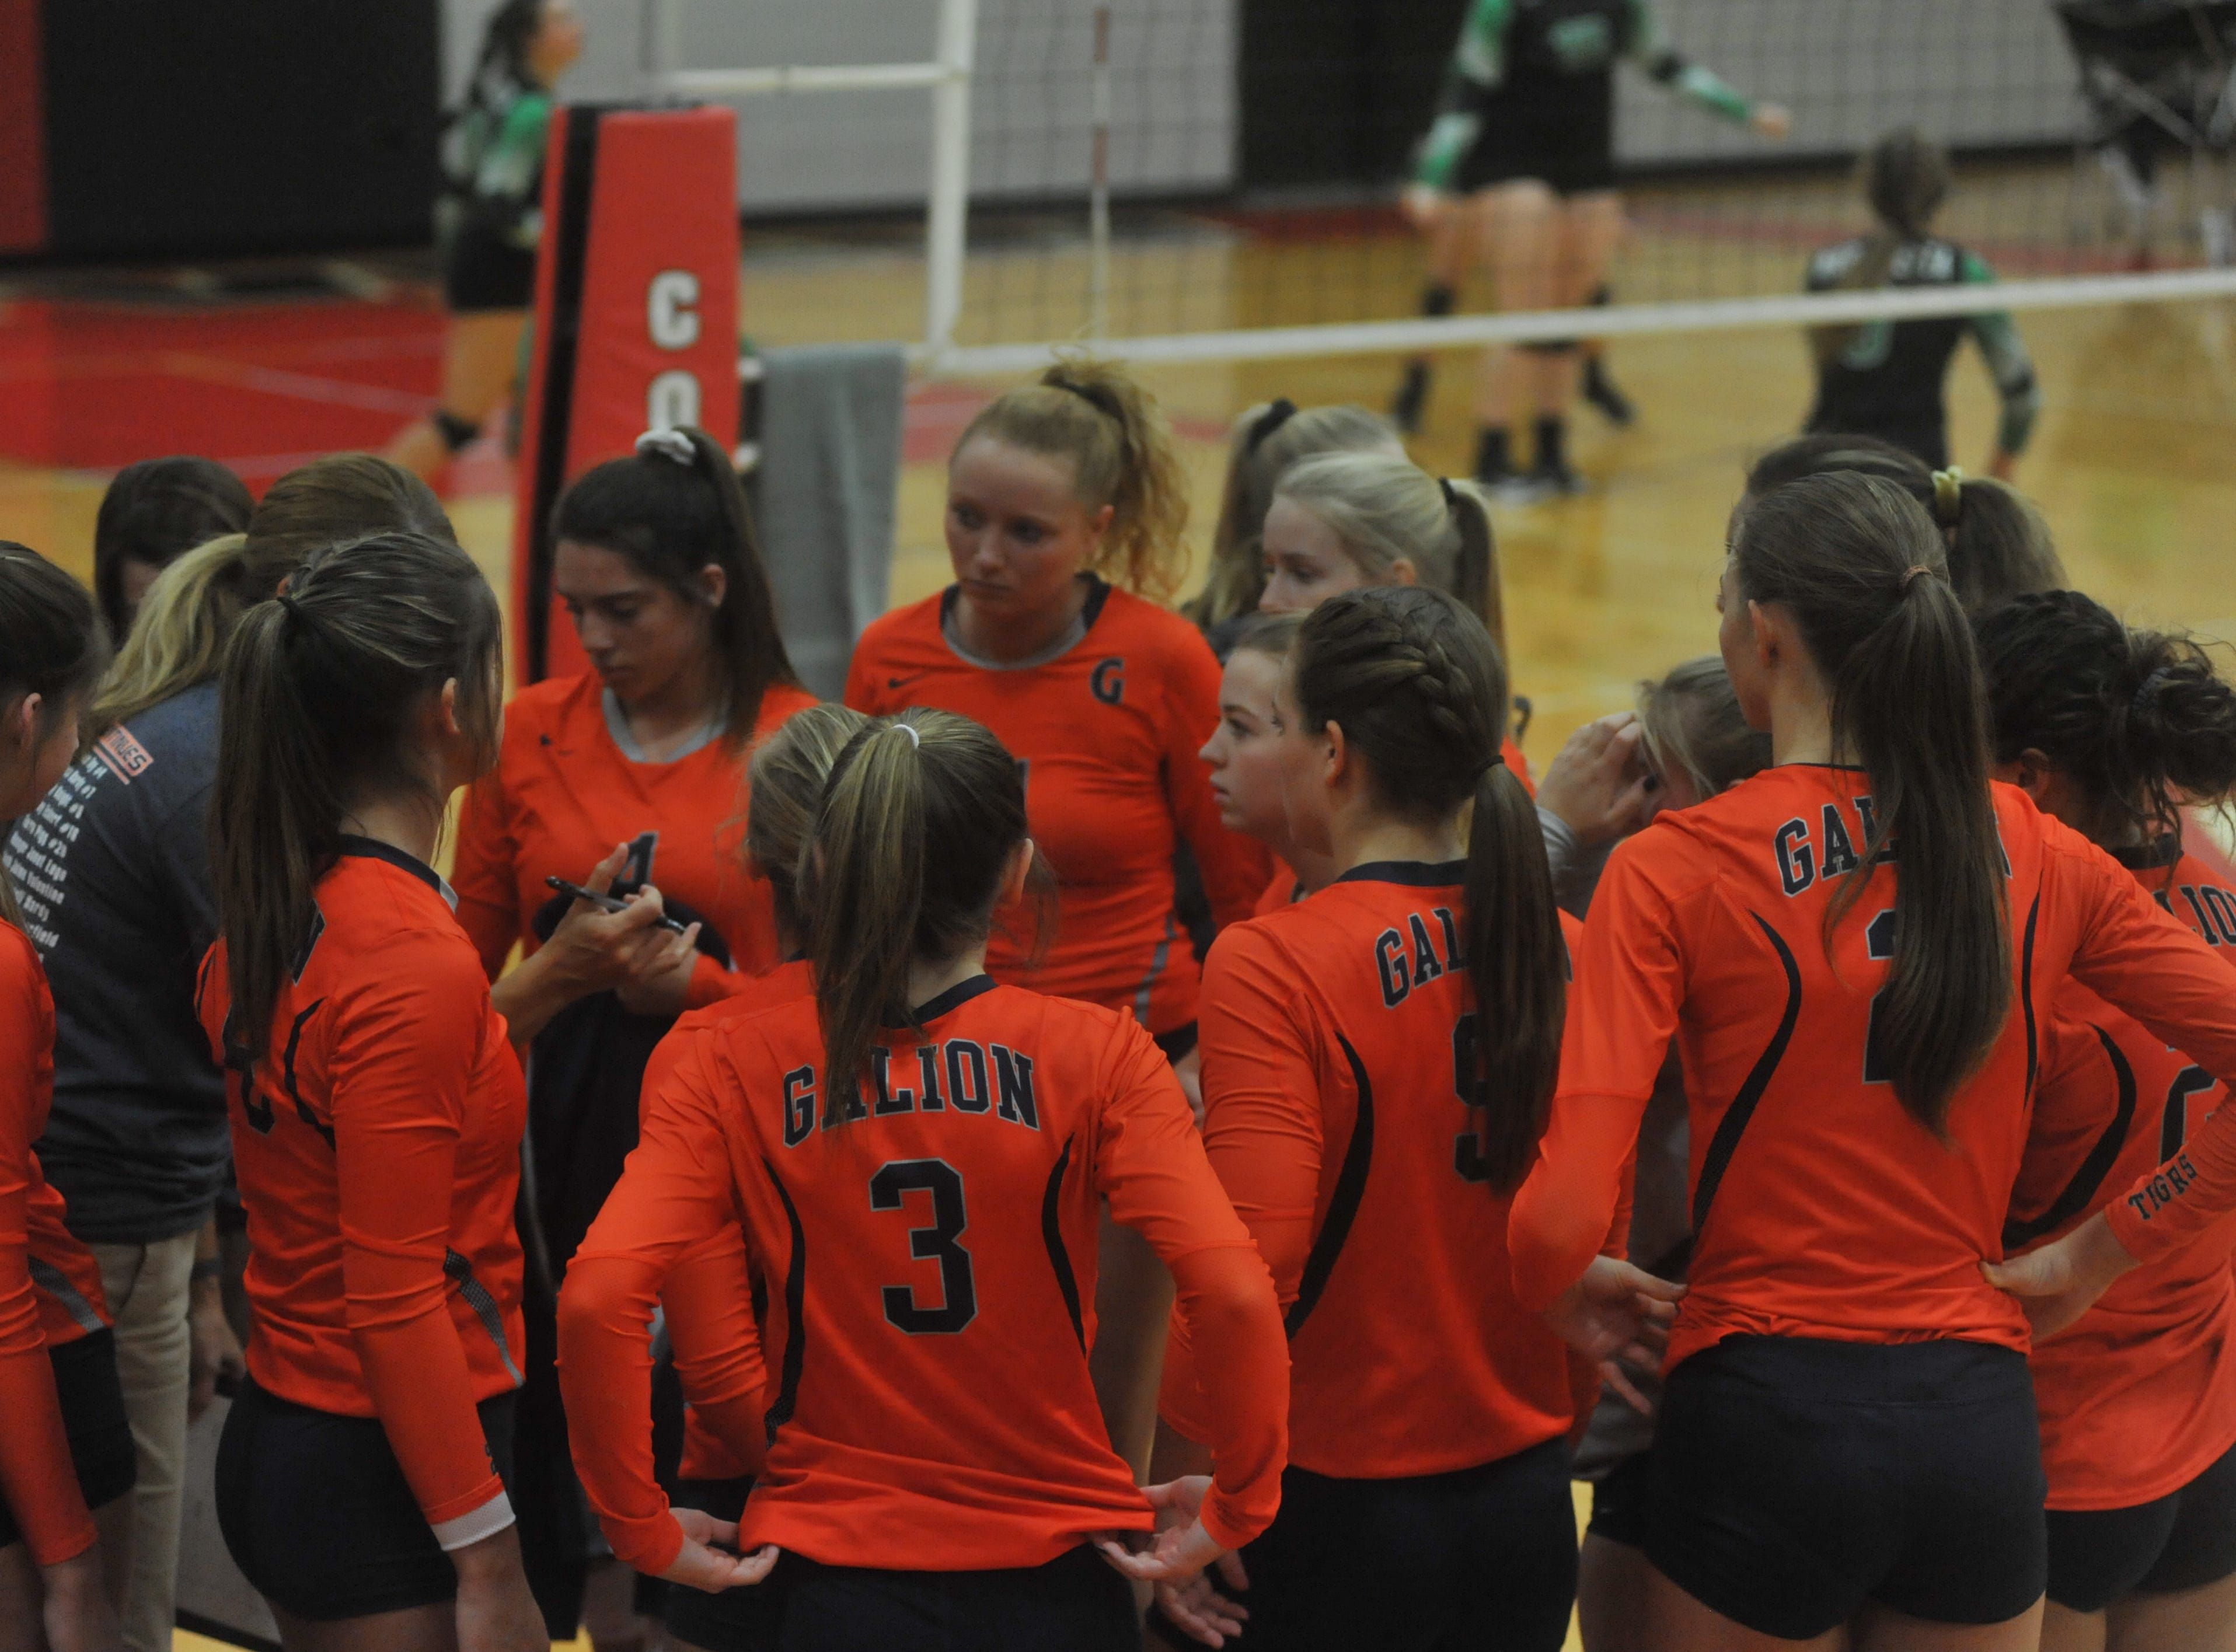 Galion huddles before the sectional final against Margaretta.